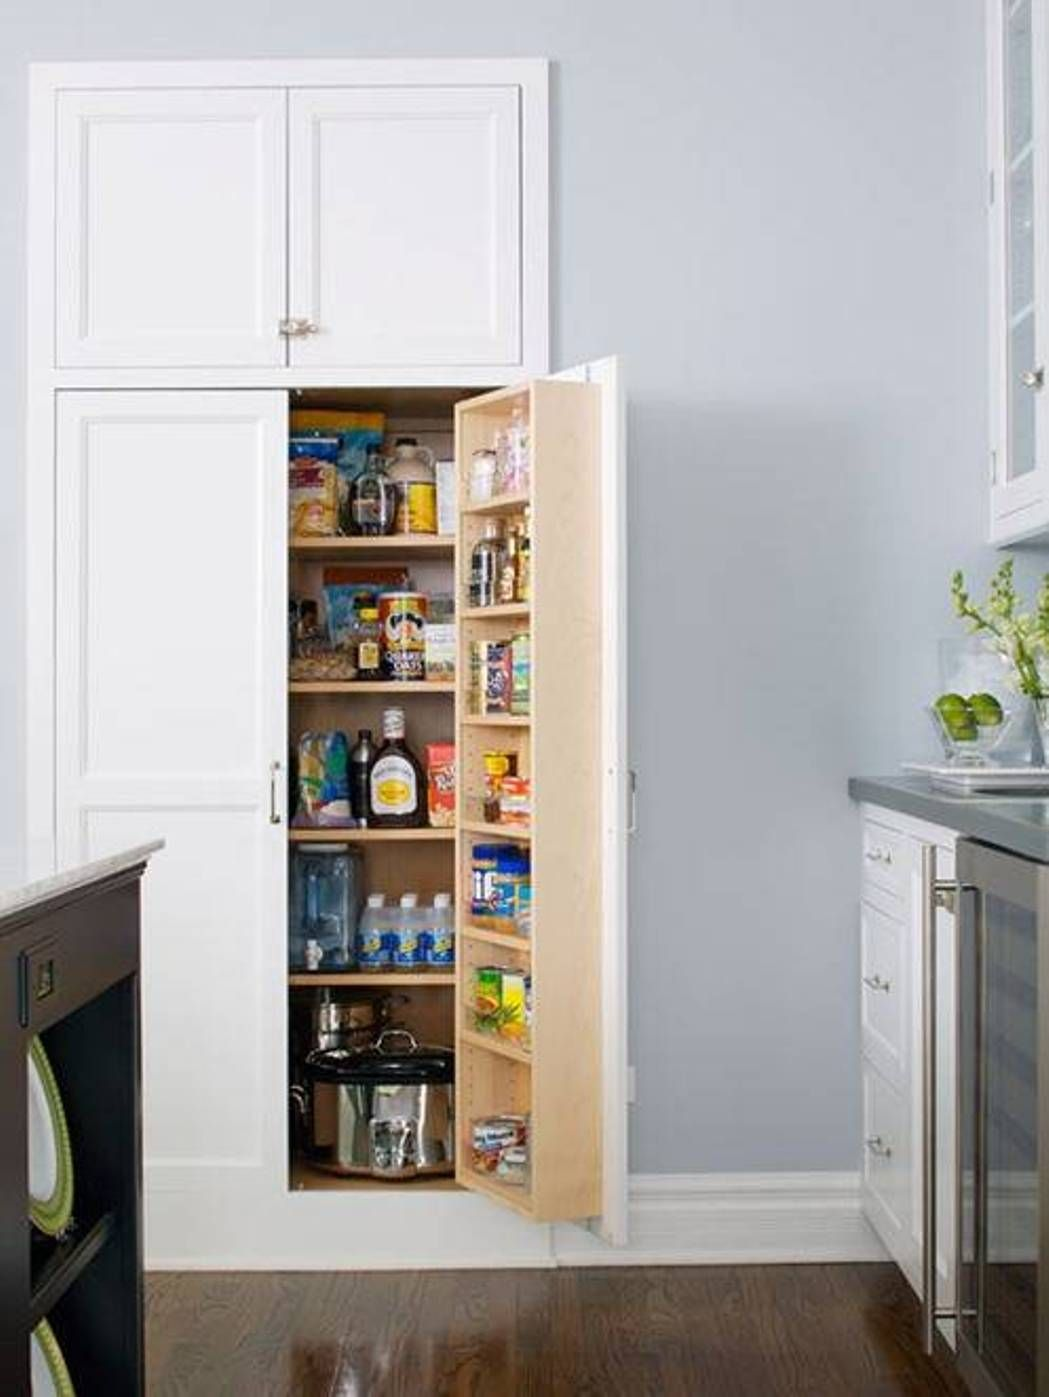 Built In White Kitchen Pantry Cabinet With Shelving Pantry Cabinet For Kitchen Pantry Design Kitchen Pantry Design Modern Kitchen Pantry